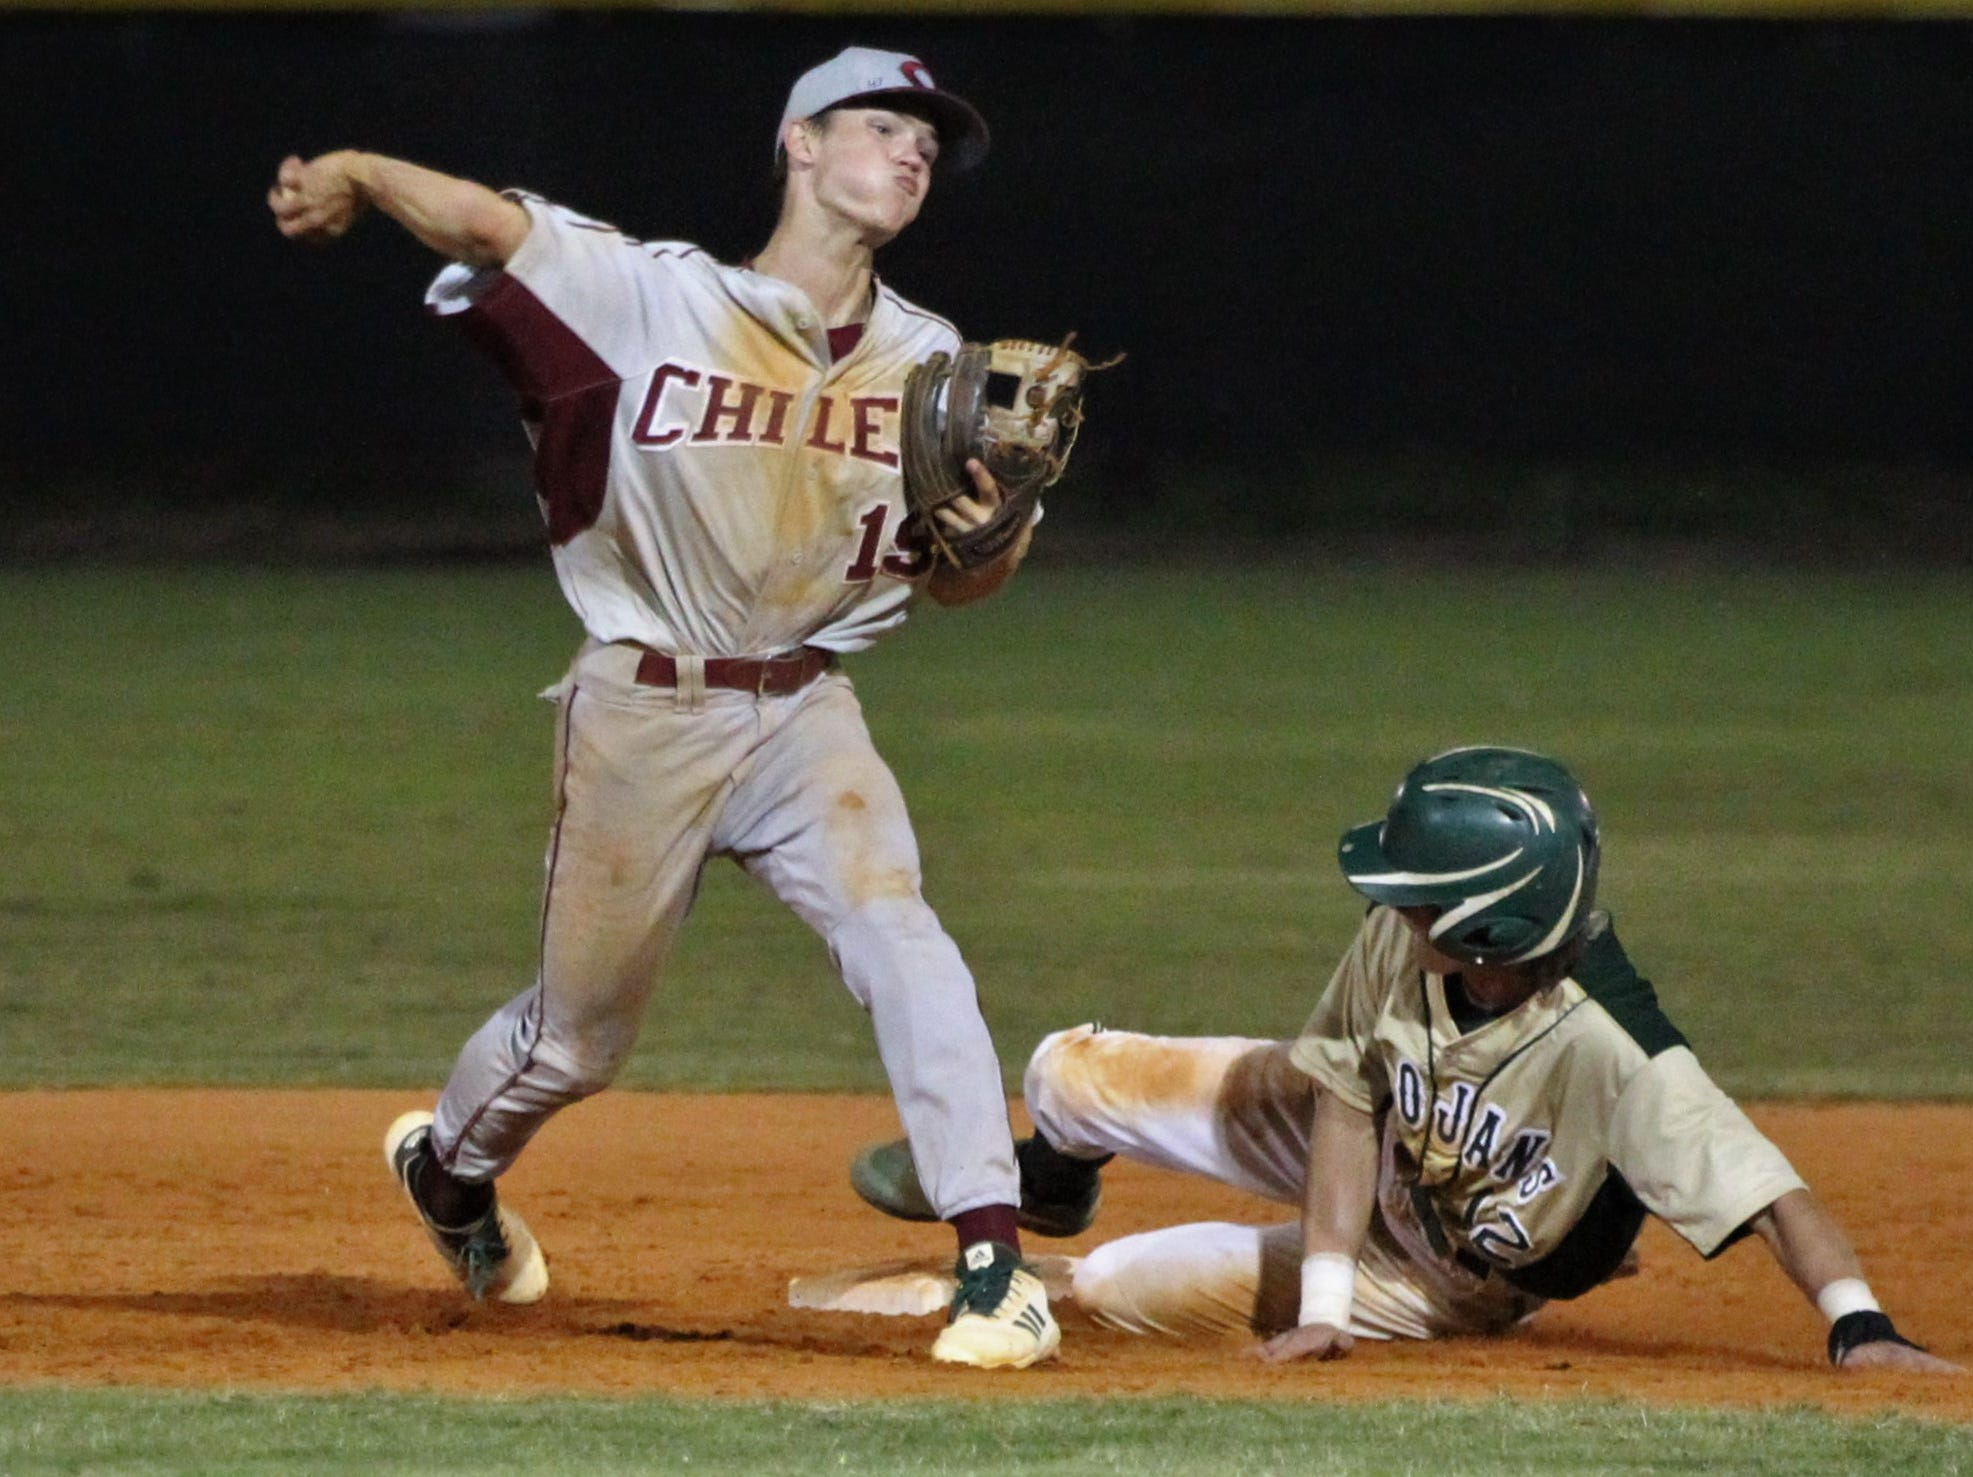 Chiles freshman Parker McDonald is credited with a force out as Lincoln baseball beat Chiles 5-4  in 10 innings during a District 2-8A championship game on Thursday, May 9, 2019.